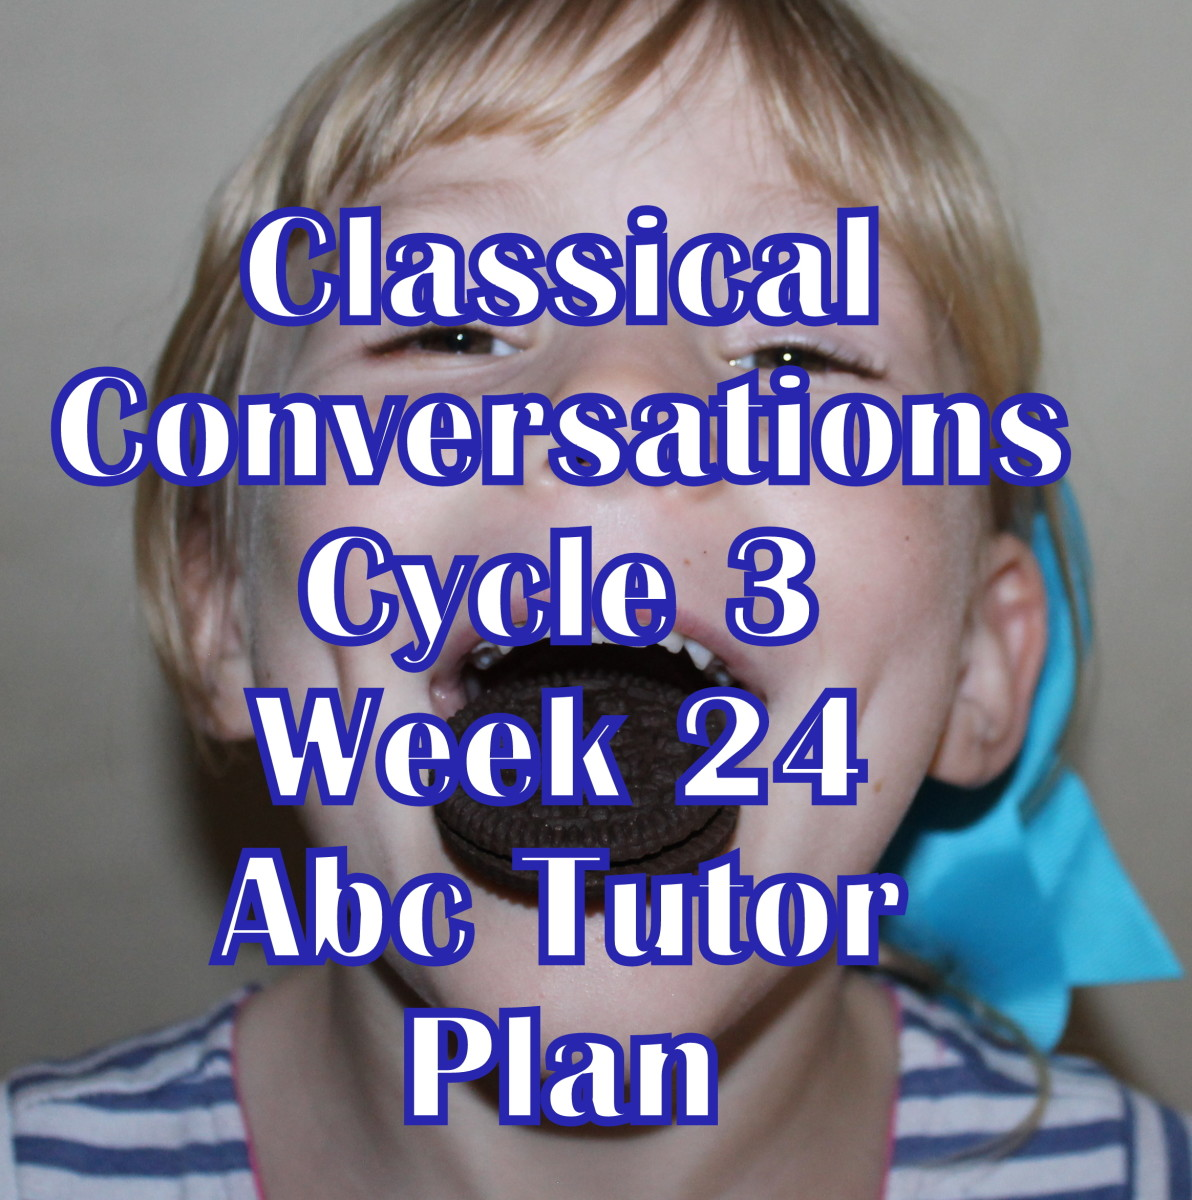 CC Cycle 3 Week 24 Lesson for Abecedarian Tutors